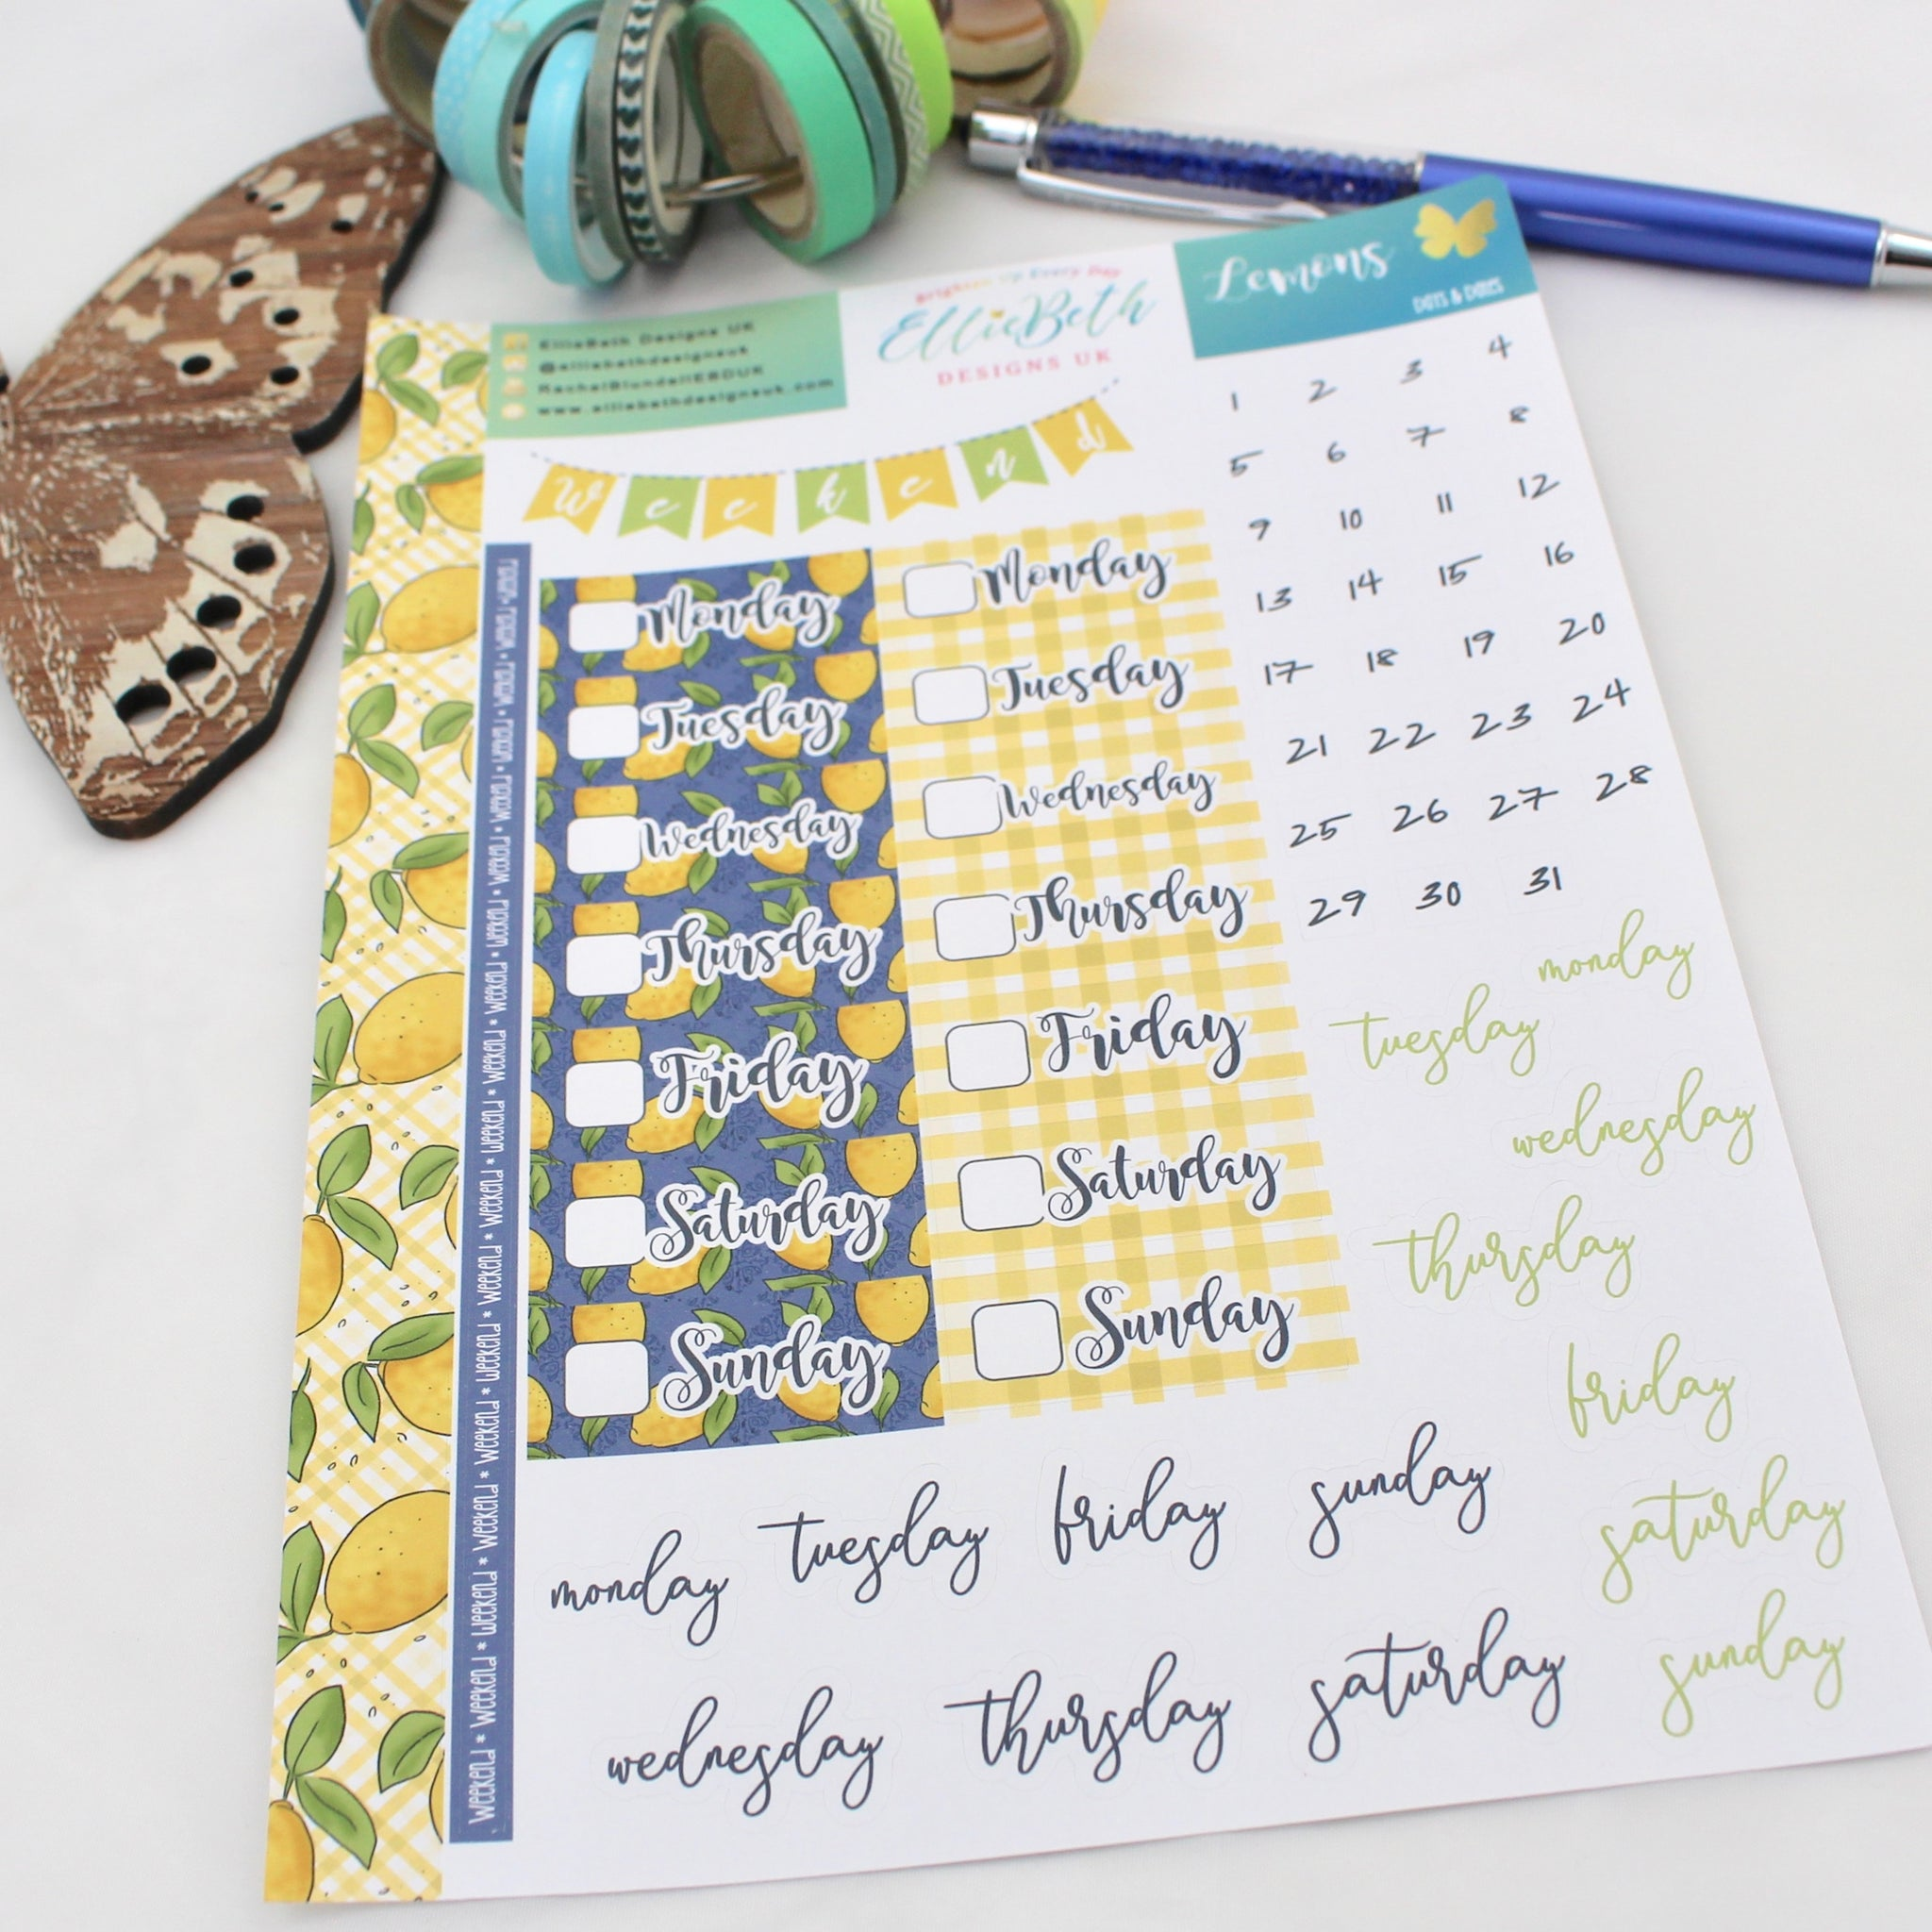 Lemons - Days and Dates - A5 binder ready planner stickers